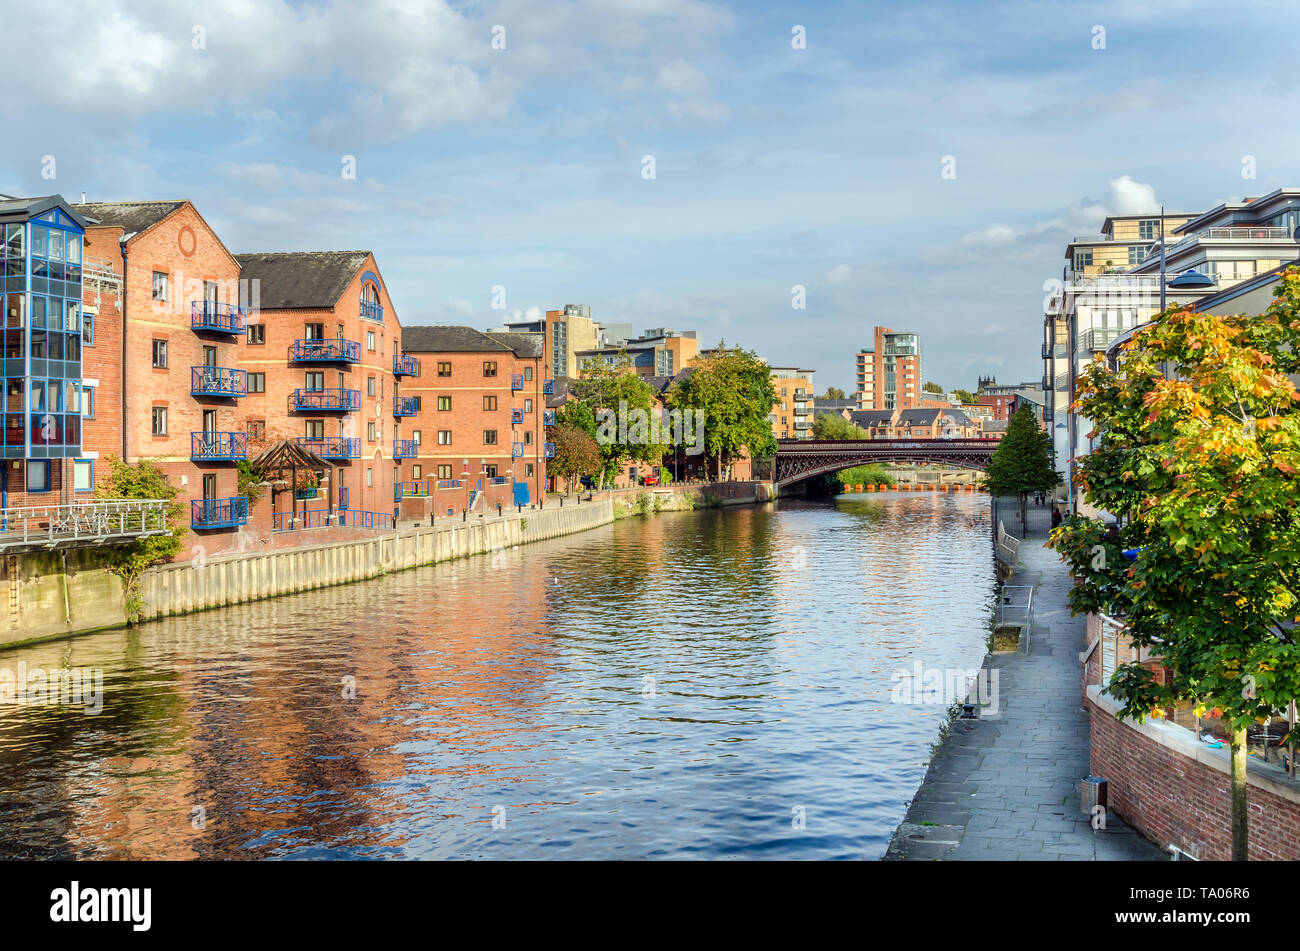 Renovated warehouses along a river on a sunny autumn day - Stock Image